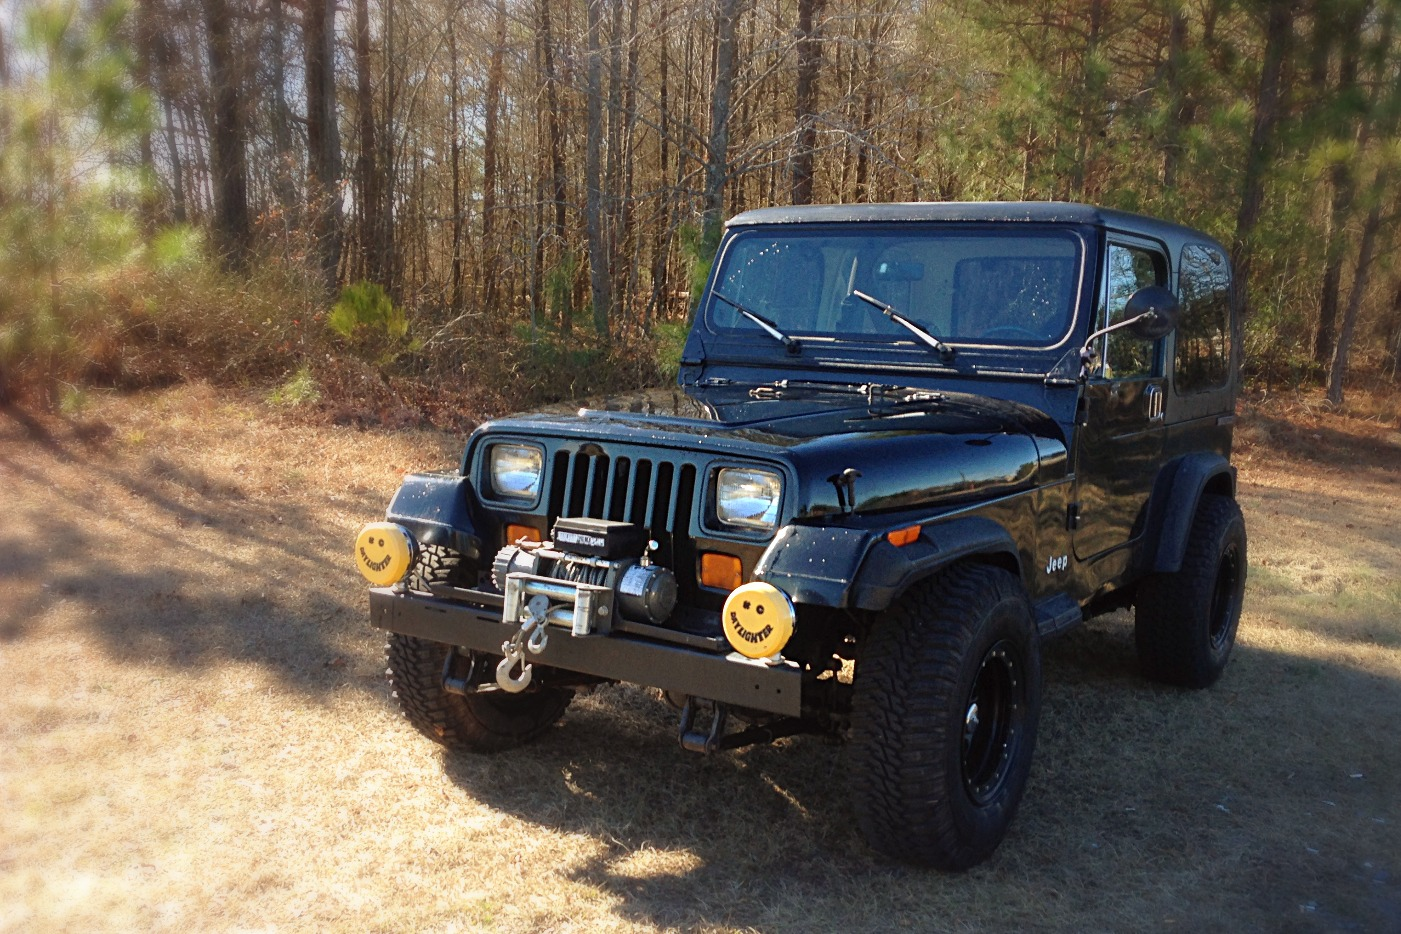 The Wrangler Gets Some Fuel System Improvements Dirty Shop Rags Jeep Yj Filter